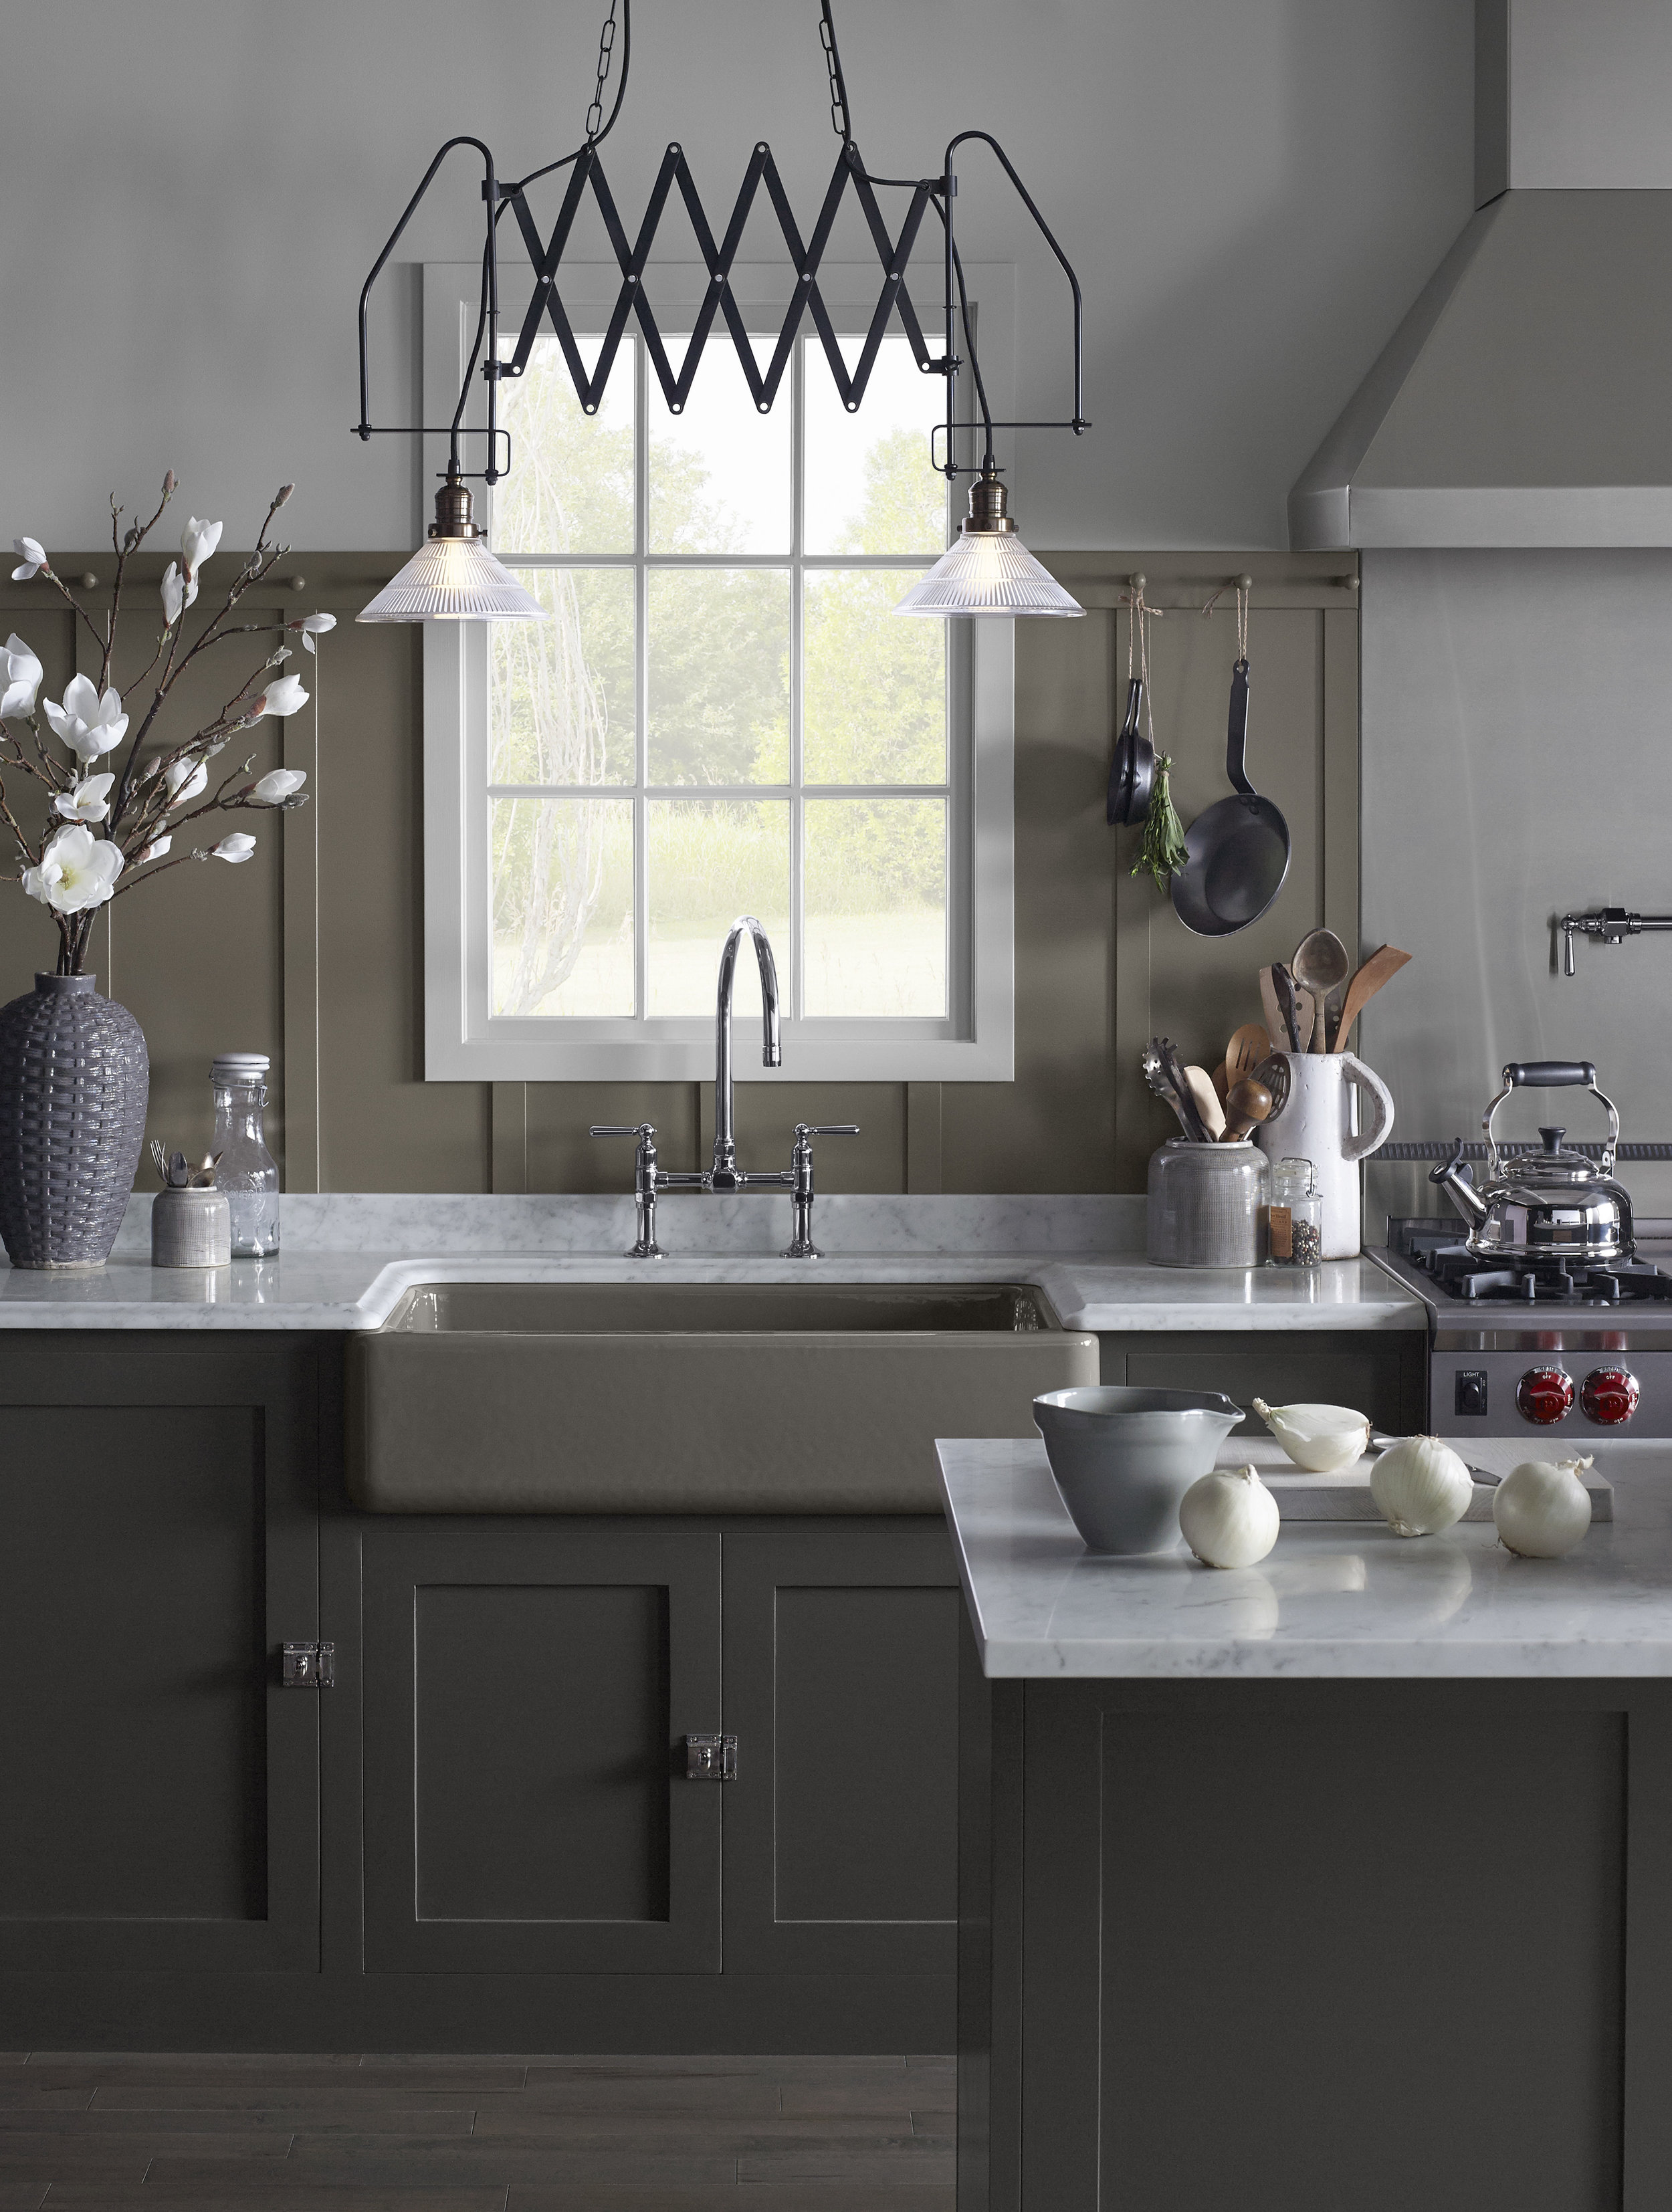 Carrara Marble is the perfect compliment to this Kohler Whitehaven® sink Photo: Kohler